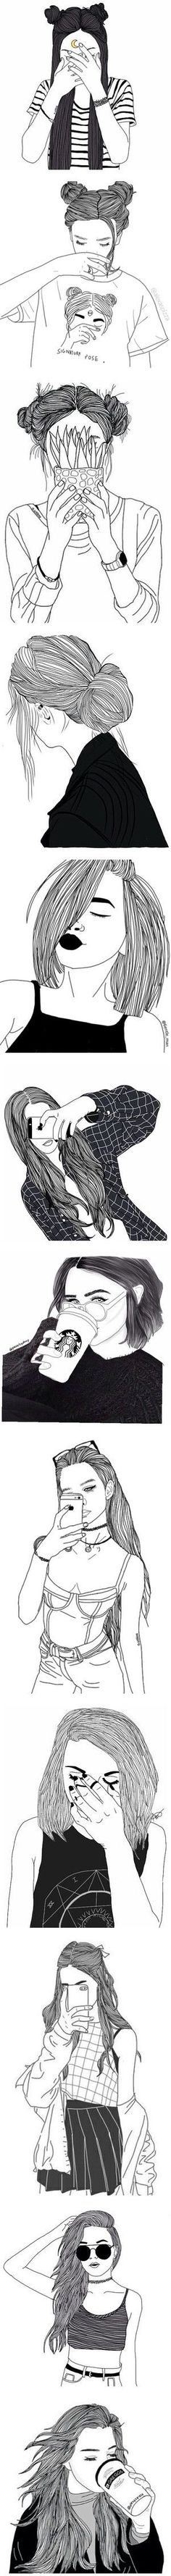 """""""black line drawings"""" by xxharrietxx ❤️ liked on Polyvore"""